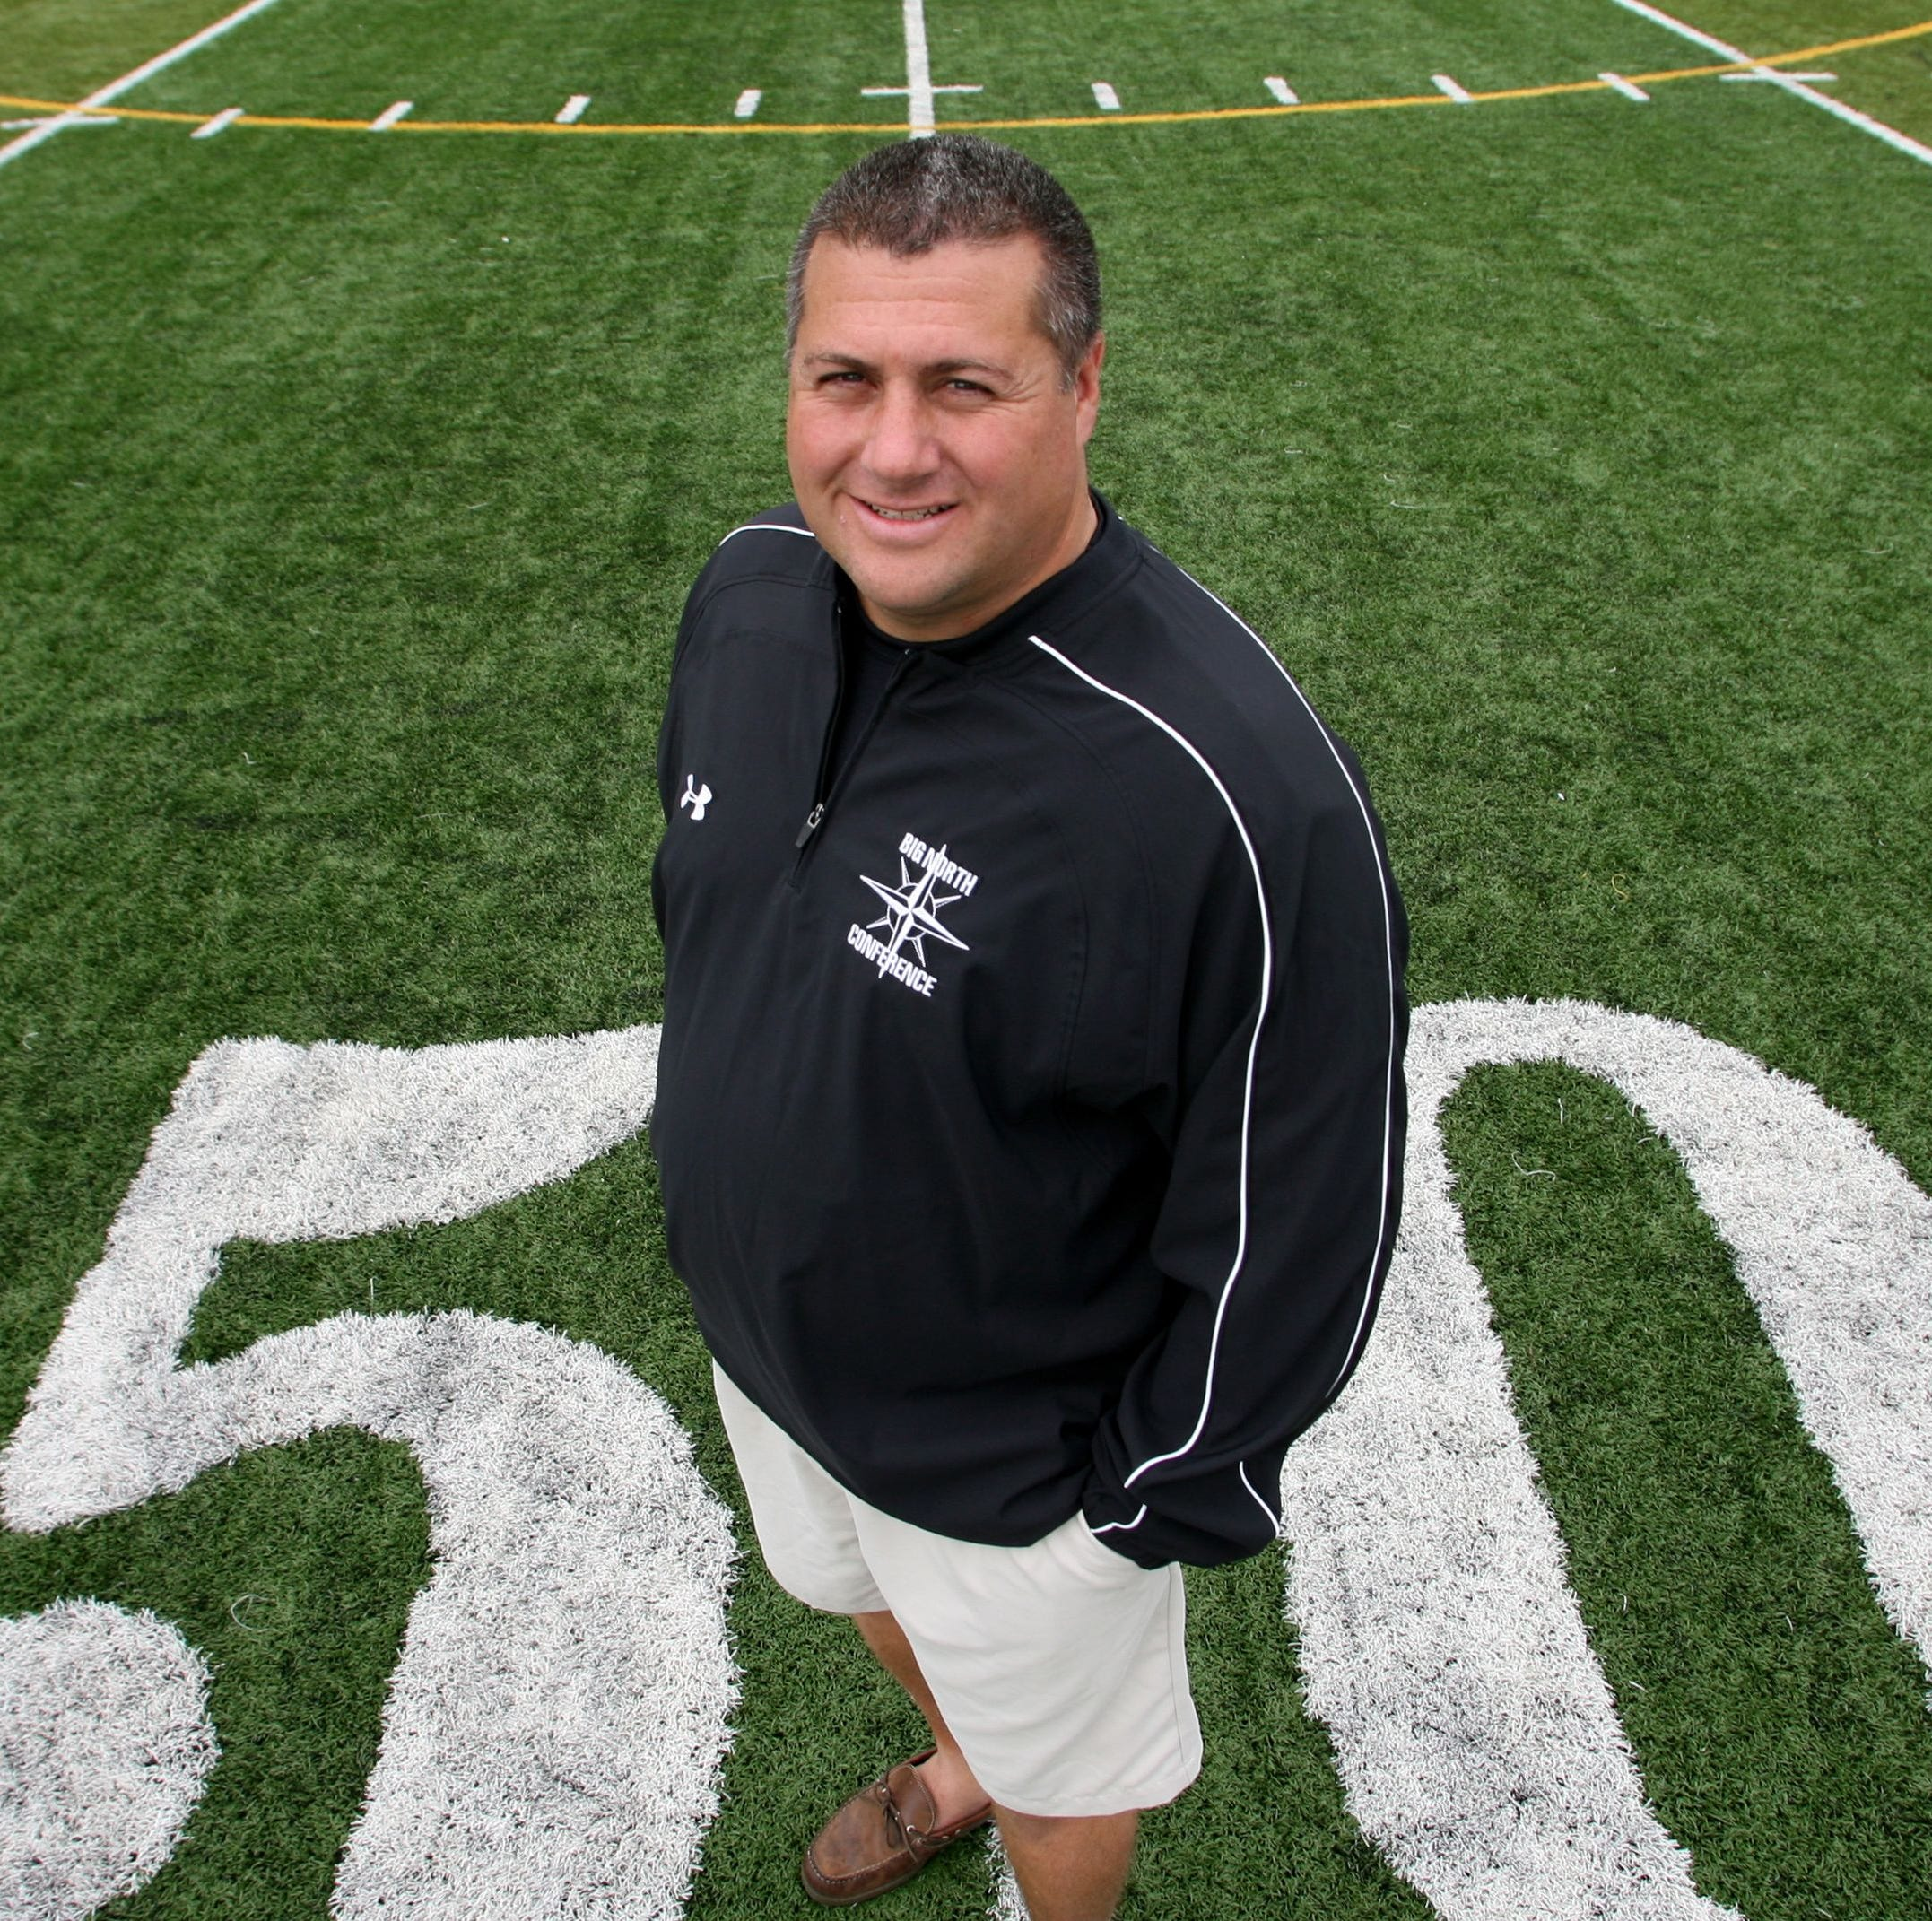 North Jersey loses role model with death of Ramsey athletic director Jim Grasso